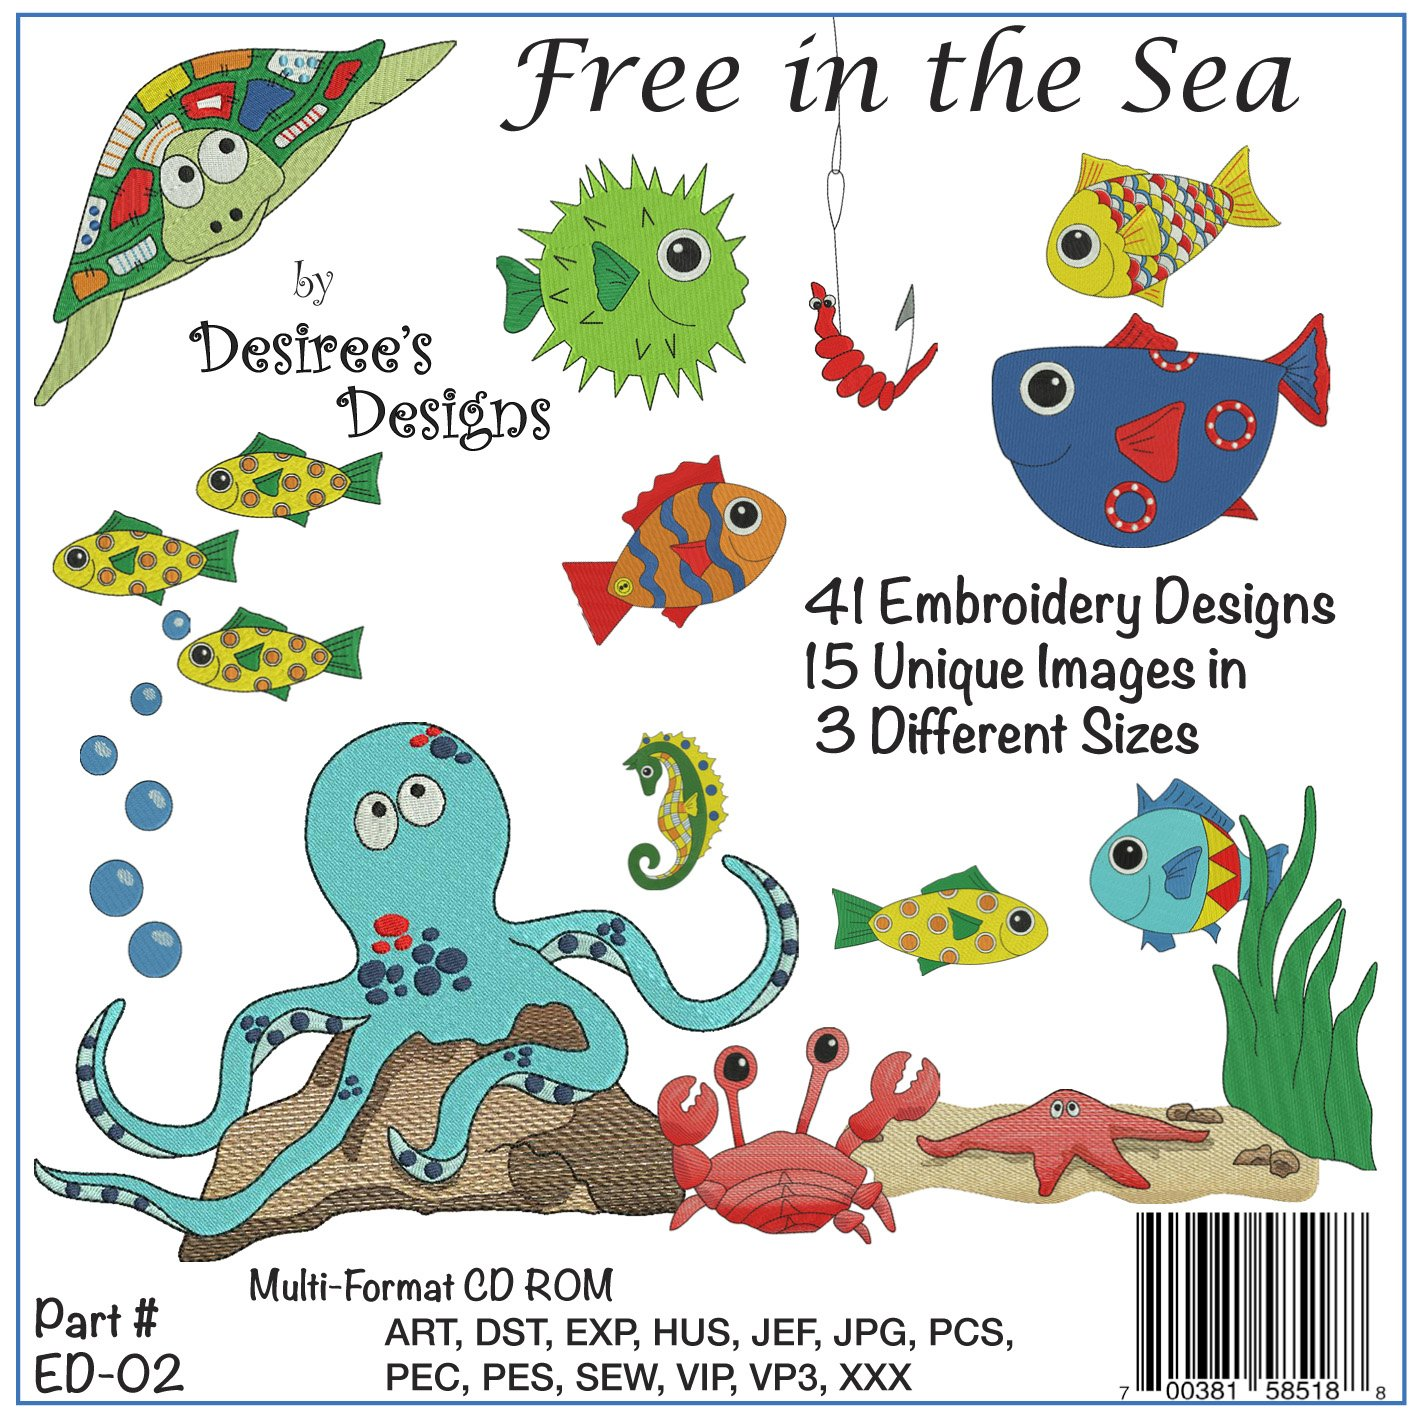 Free in the Sea Embroidery CD